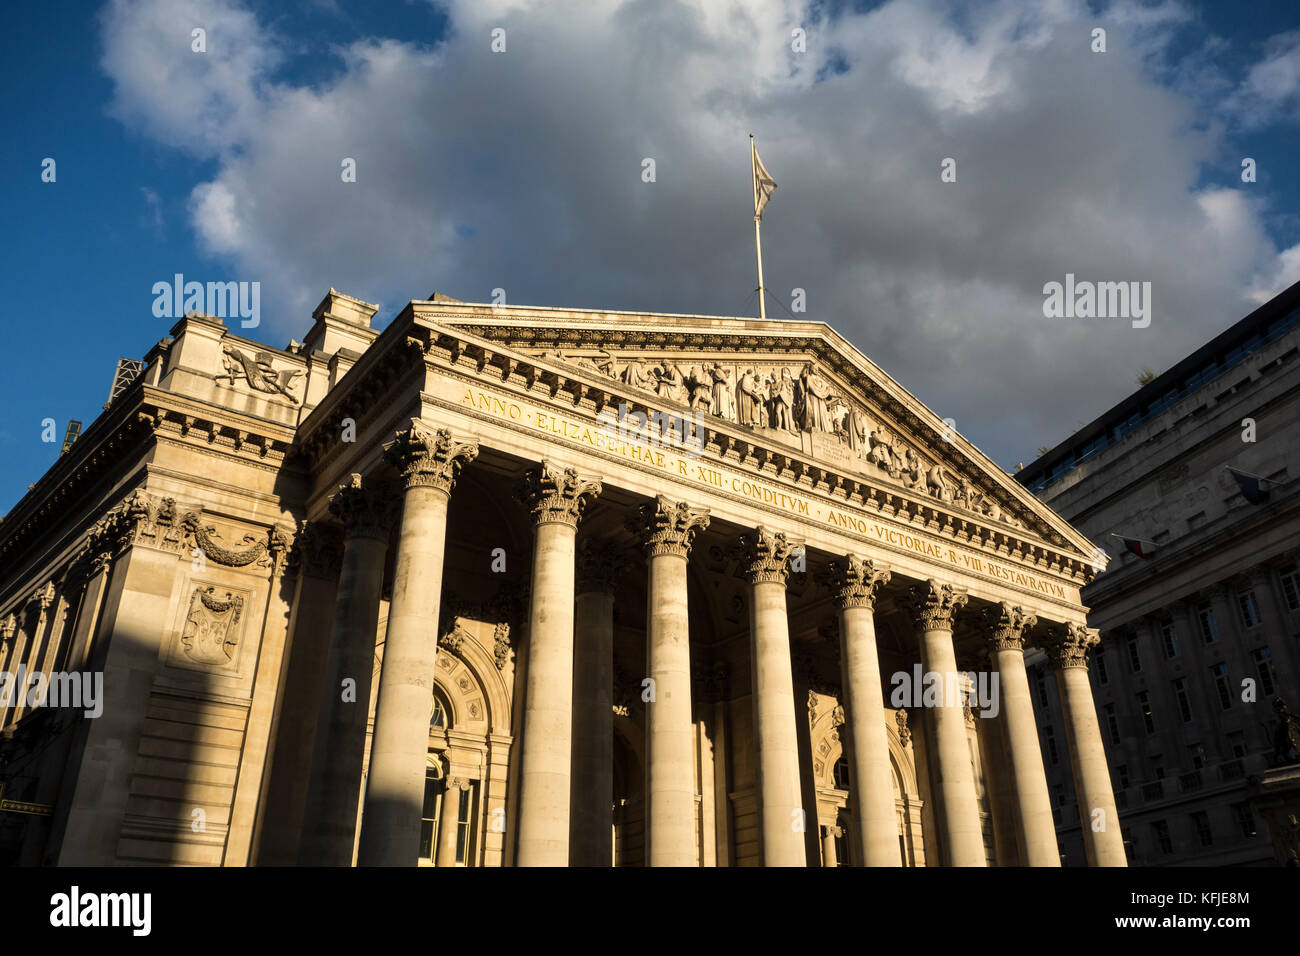 Columns on The Royal Exchange, Clity of London, UK - Stock Image